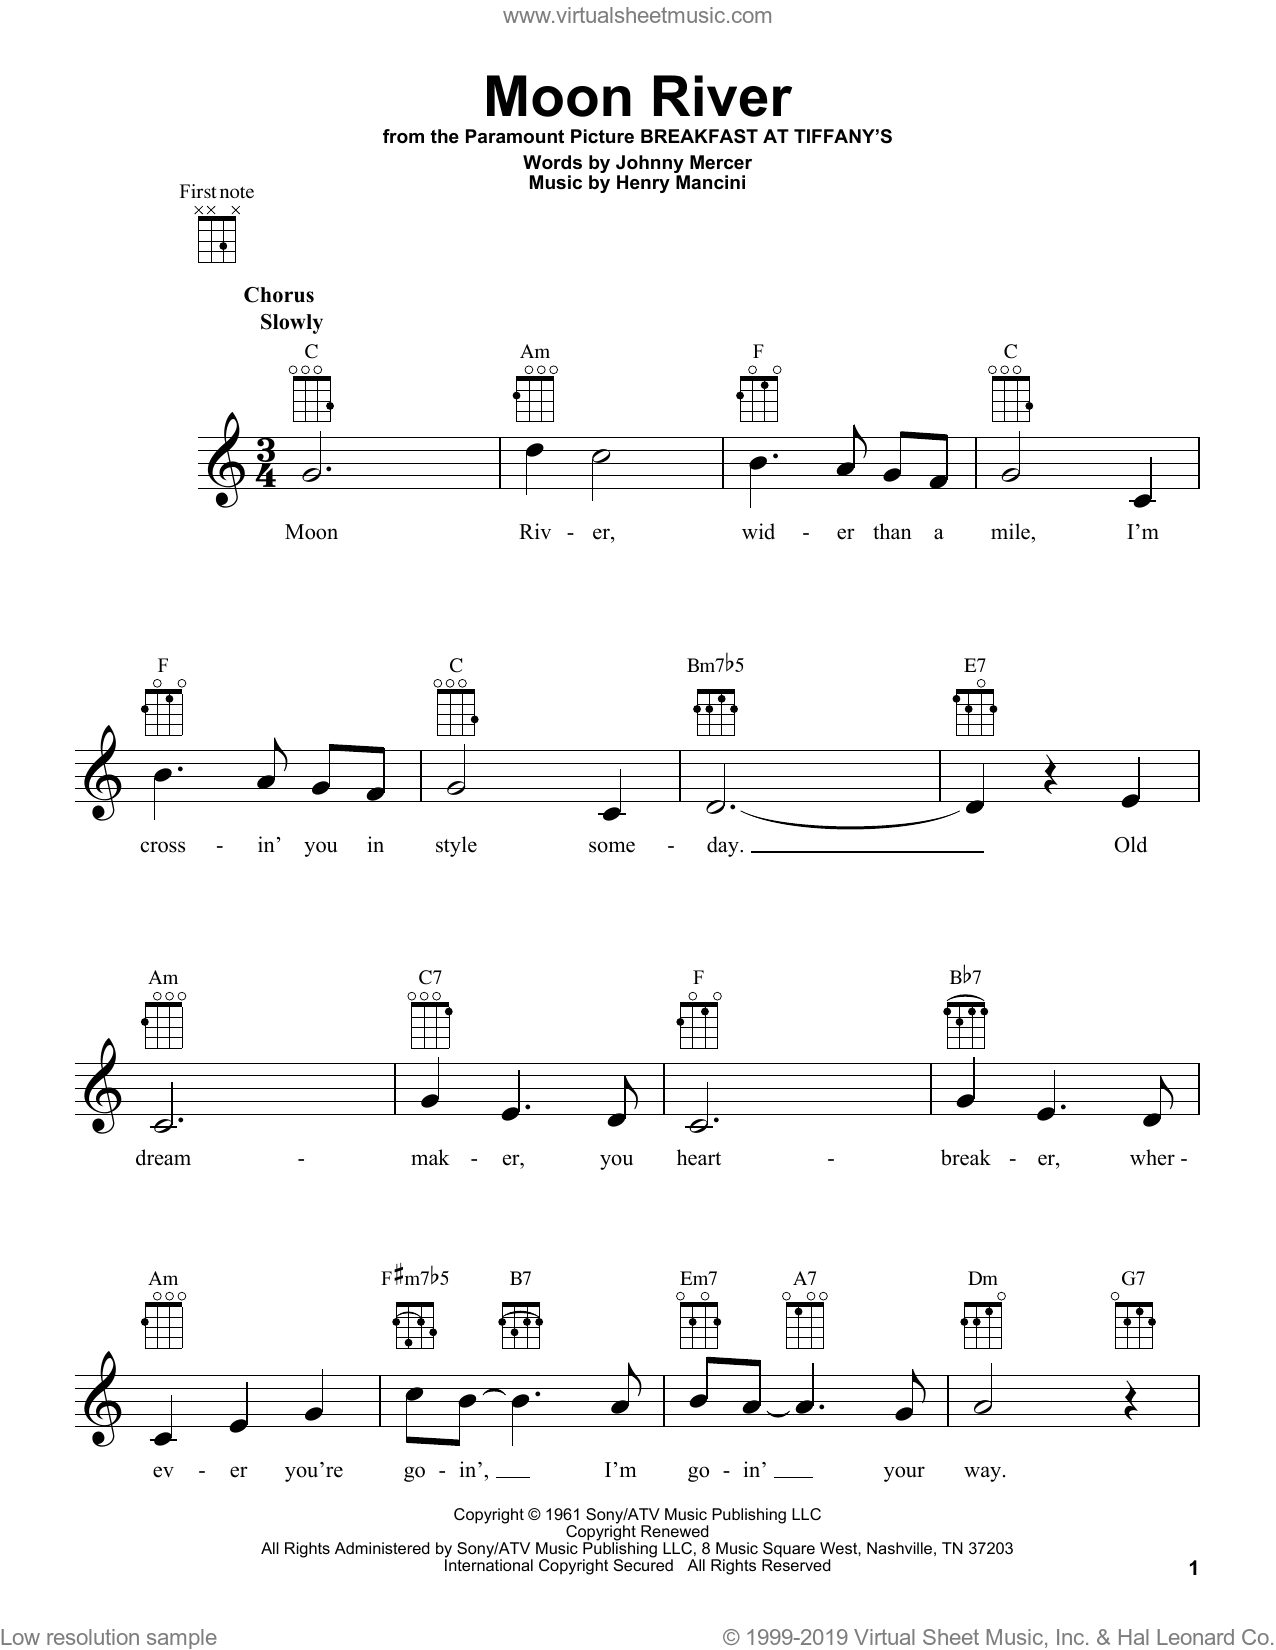 Moon River sheet music for ukulele by Henry Mancini and Andy Williams, intermediate skill level